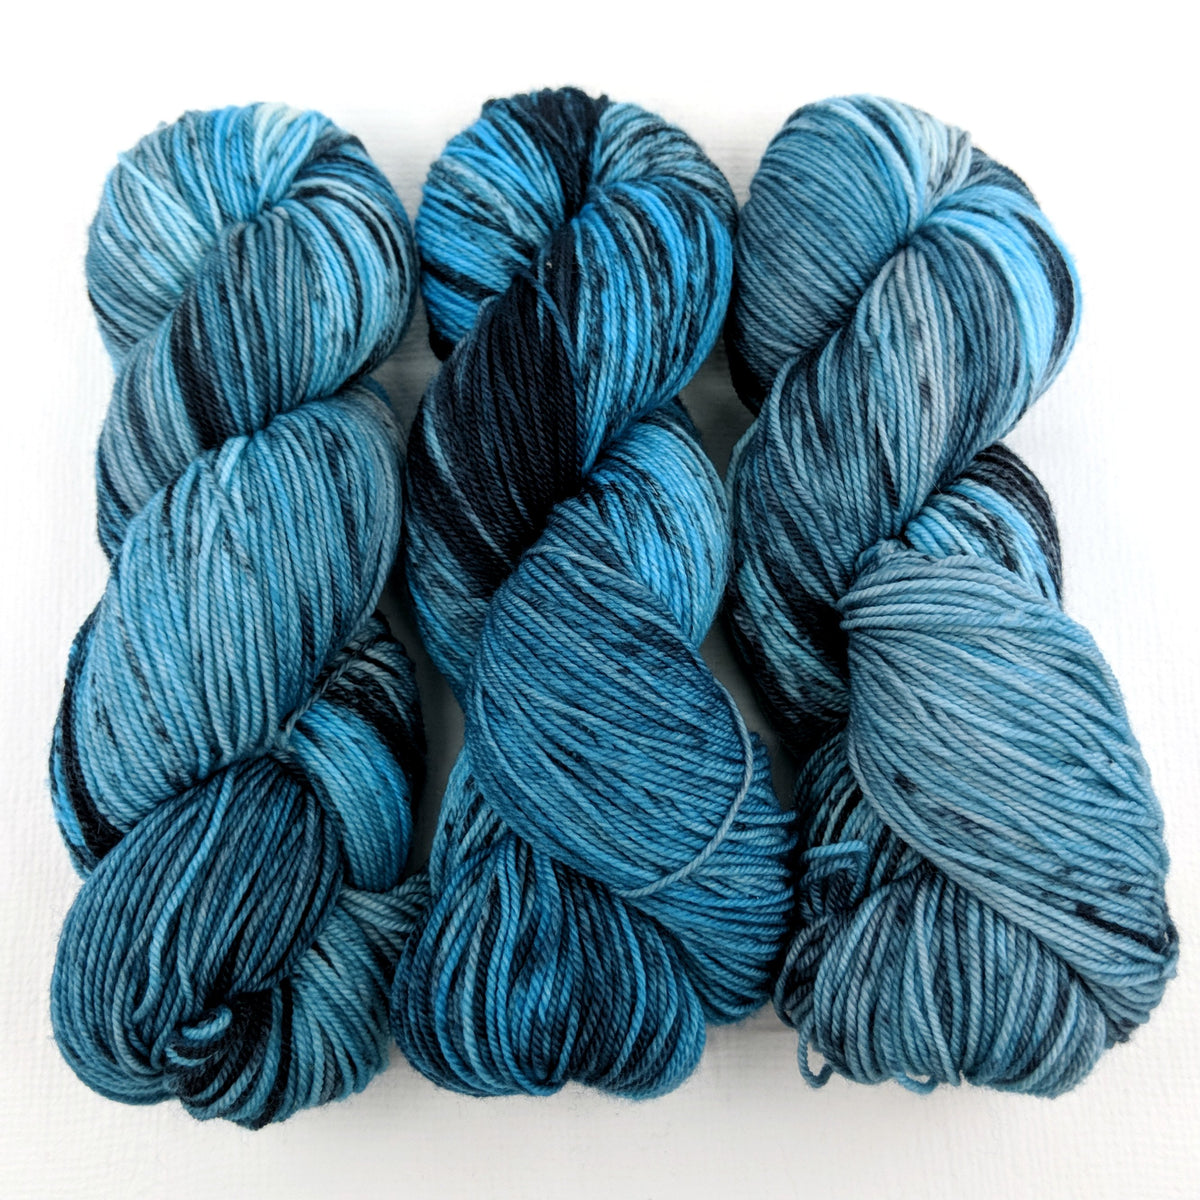 Chinook Arch - Revival Fingering - Dyed Stock